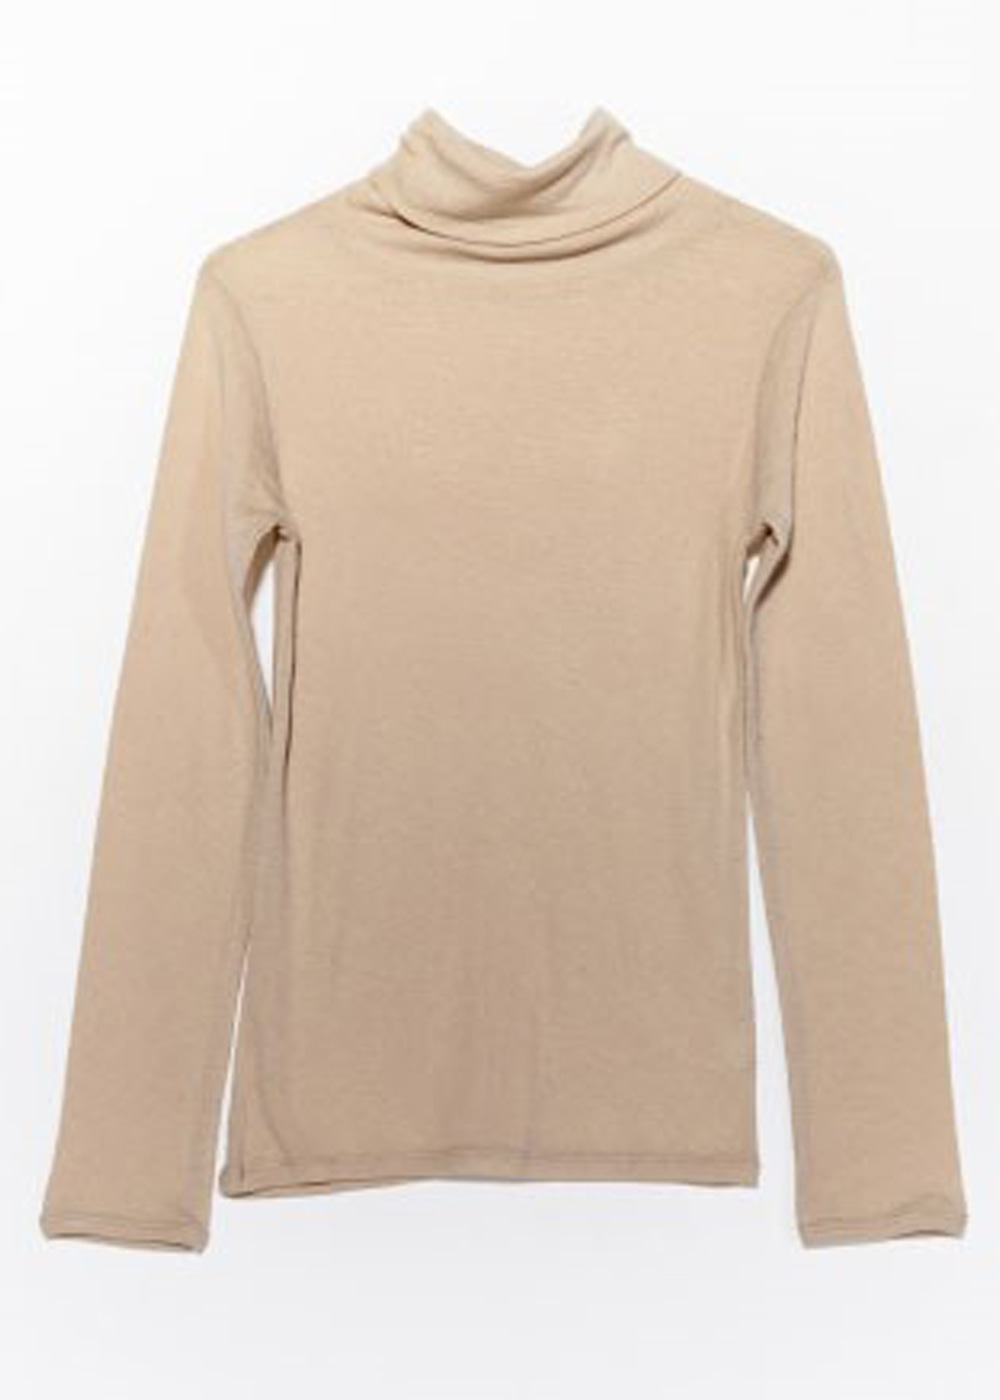 Tripoli Turtleneck Sleeve - Nude